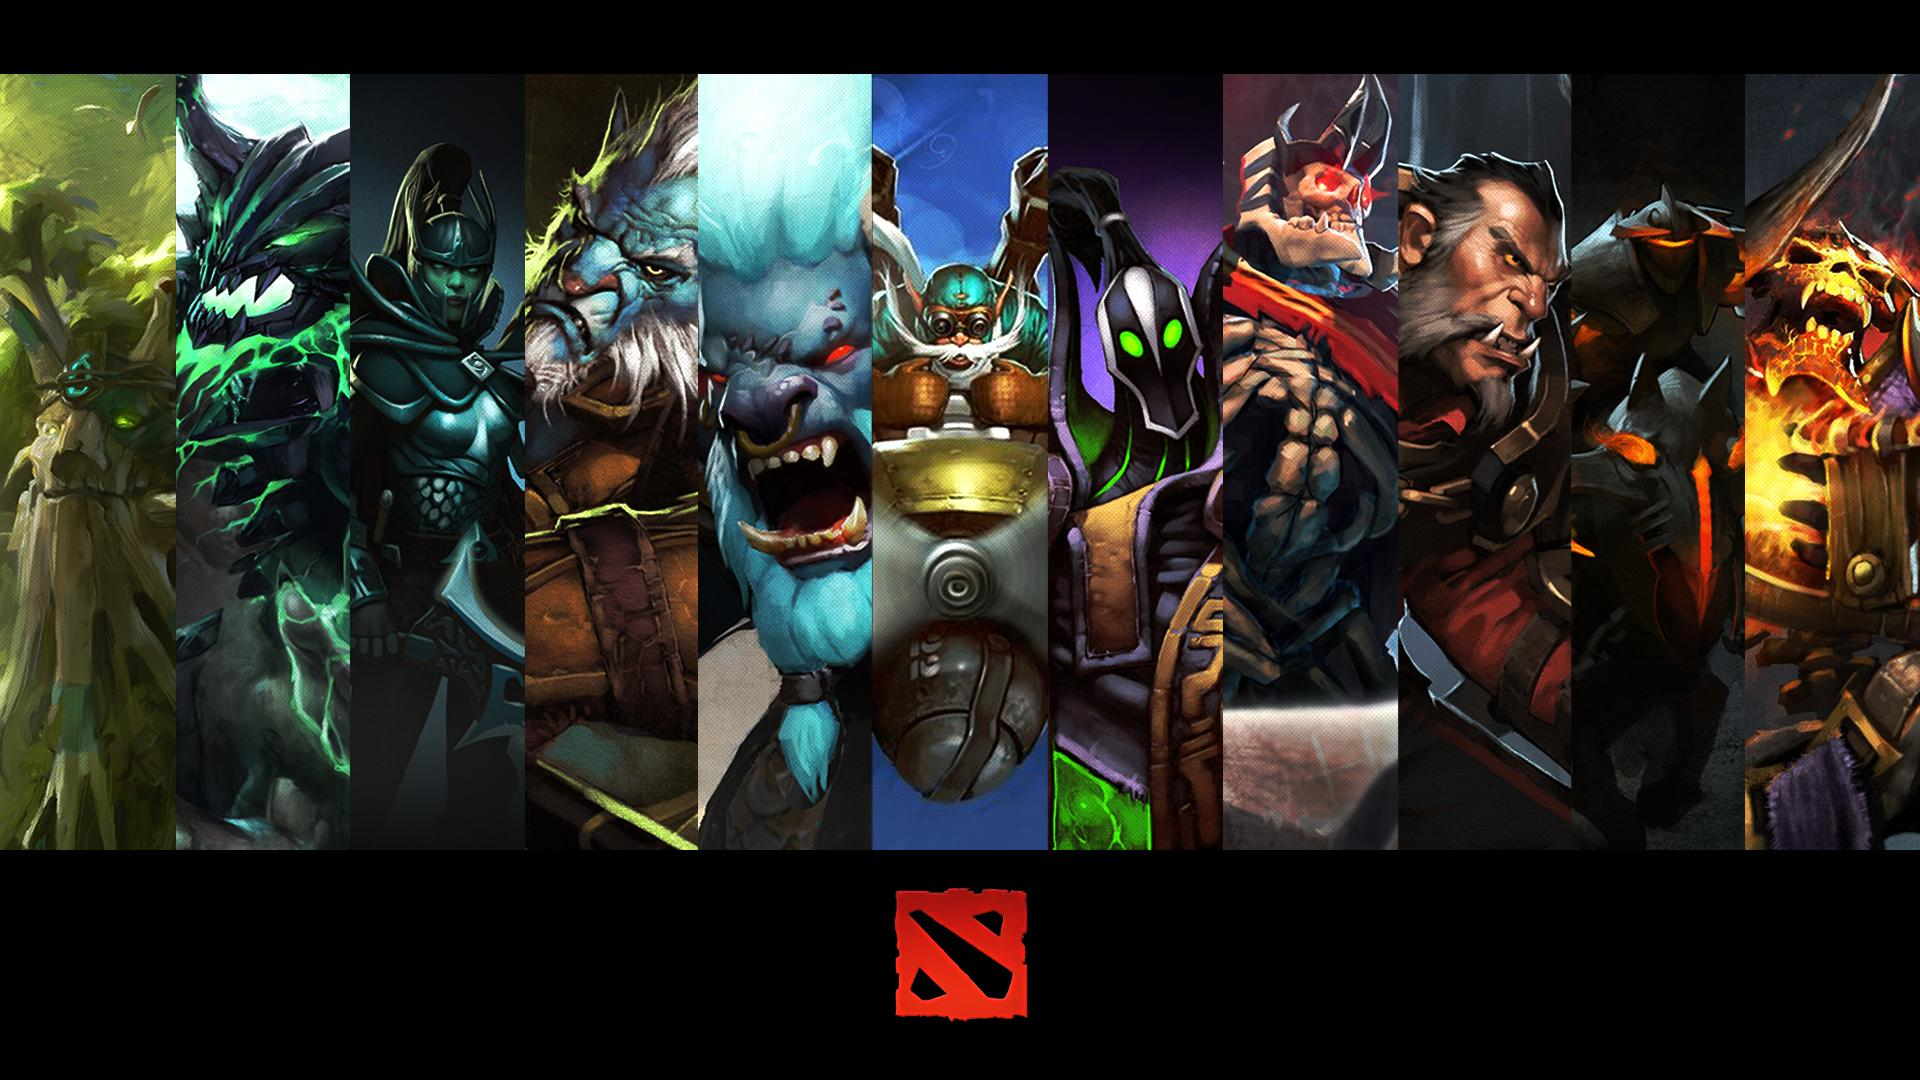 dota 2 wallpapers 40 wallpapers adorable wallpapers